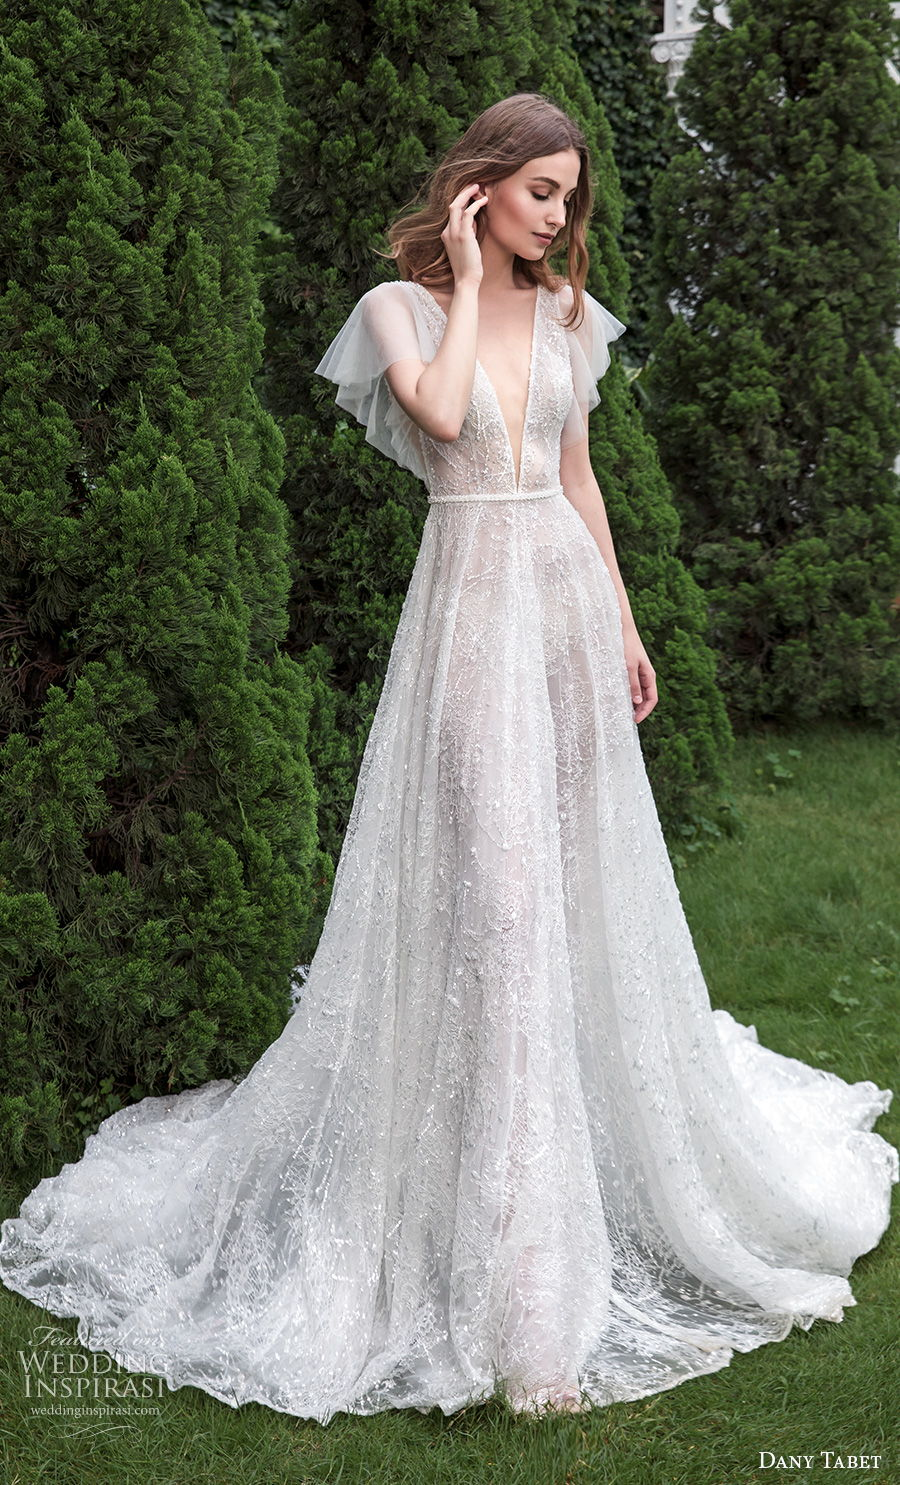 dany tabet 2021 emerge bridal short butterfly sleeves deep v neck light embellishment romantic a  line wedding dress low v back chapel train (5) mv